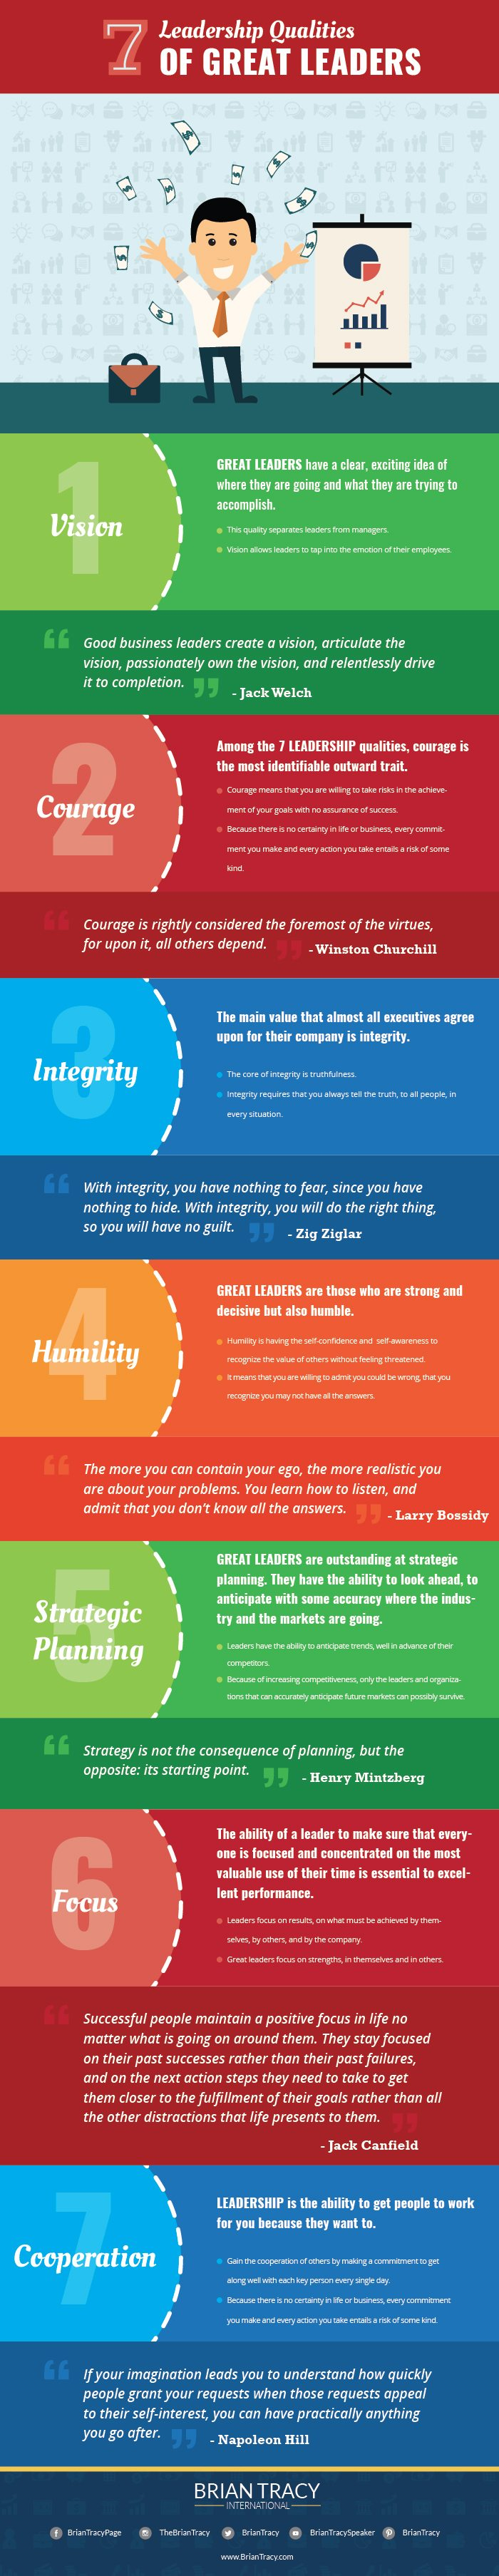 7 Leadership Qualities & Characteristics of Good Leaders | Brian Tracy